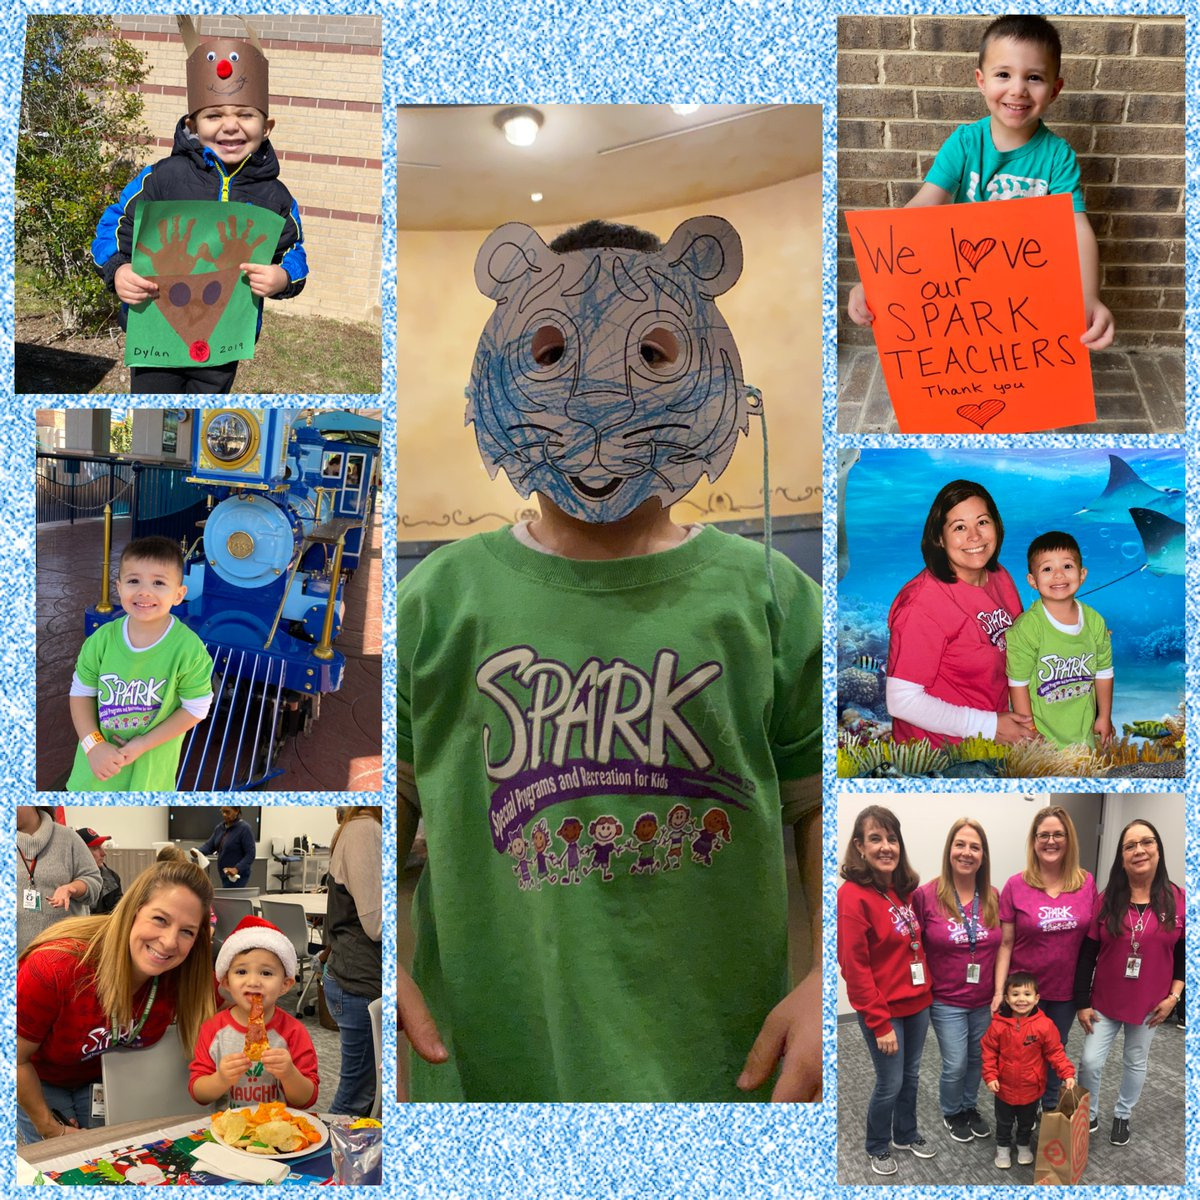 I'm so thankful for the learning opportunities we had with Spark this year, even though it was cut short. Hopeful to return soon. We love Spark!  @humbleISD_SPARK @humbleISD_PREK #BeTheLight <br>http://pic.twitter.com/qibGBiurFu